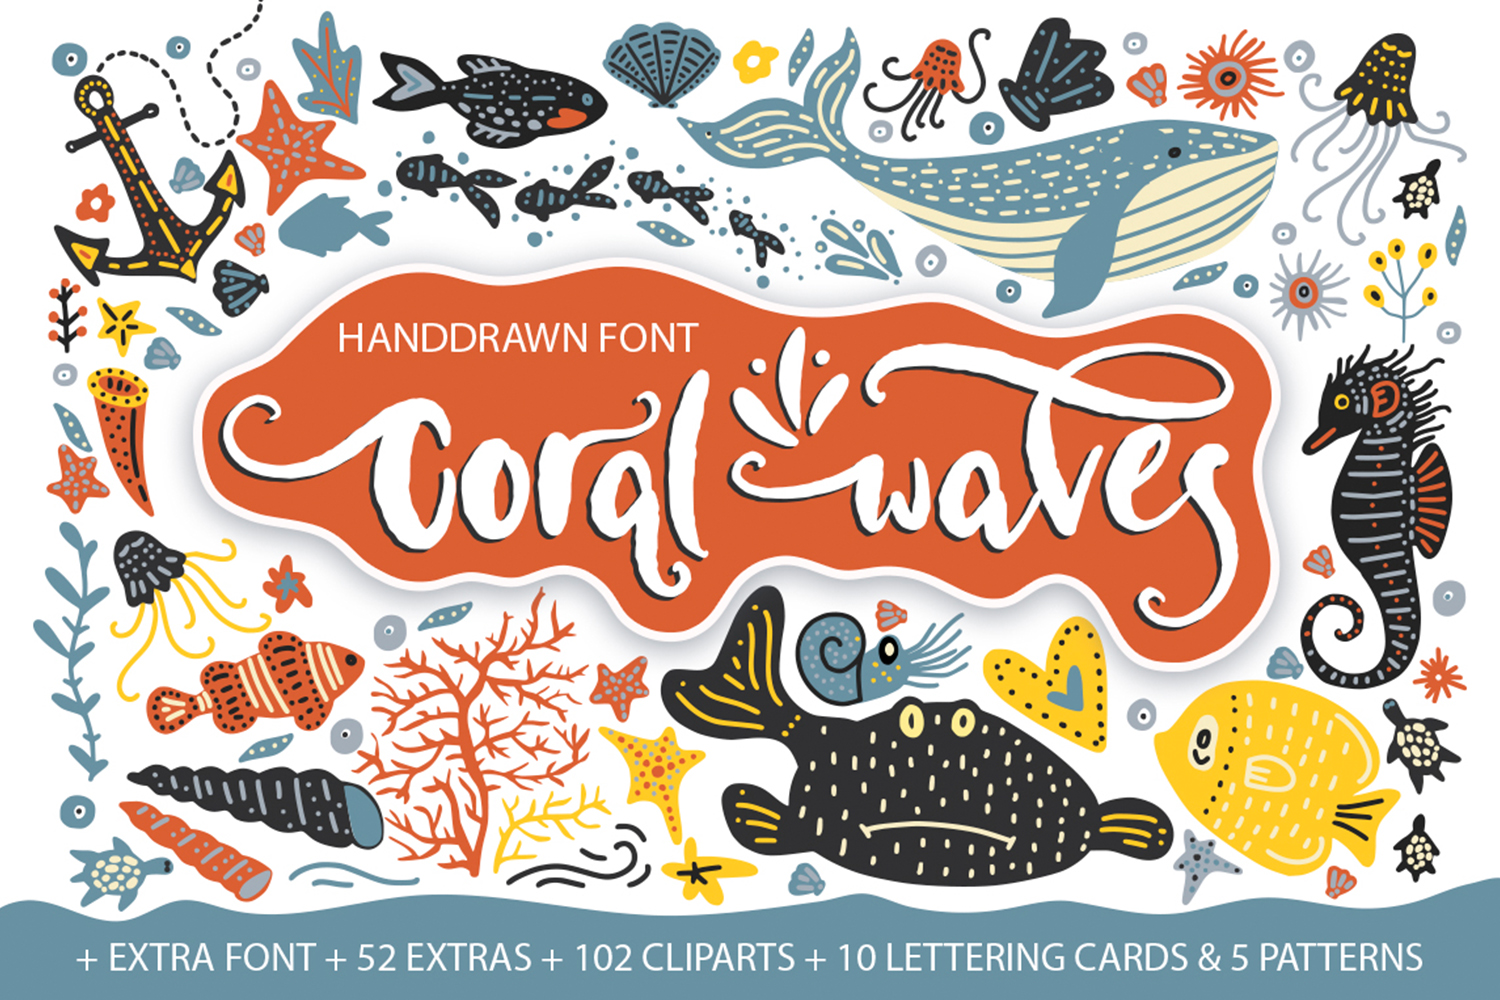 Coral waves. Font and clip arts. example image 1